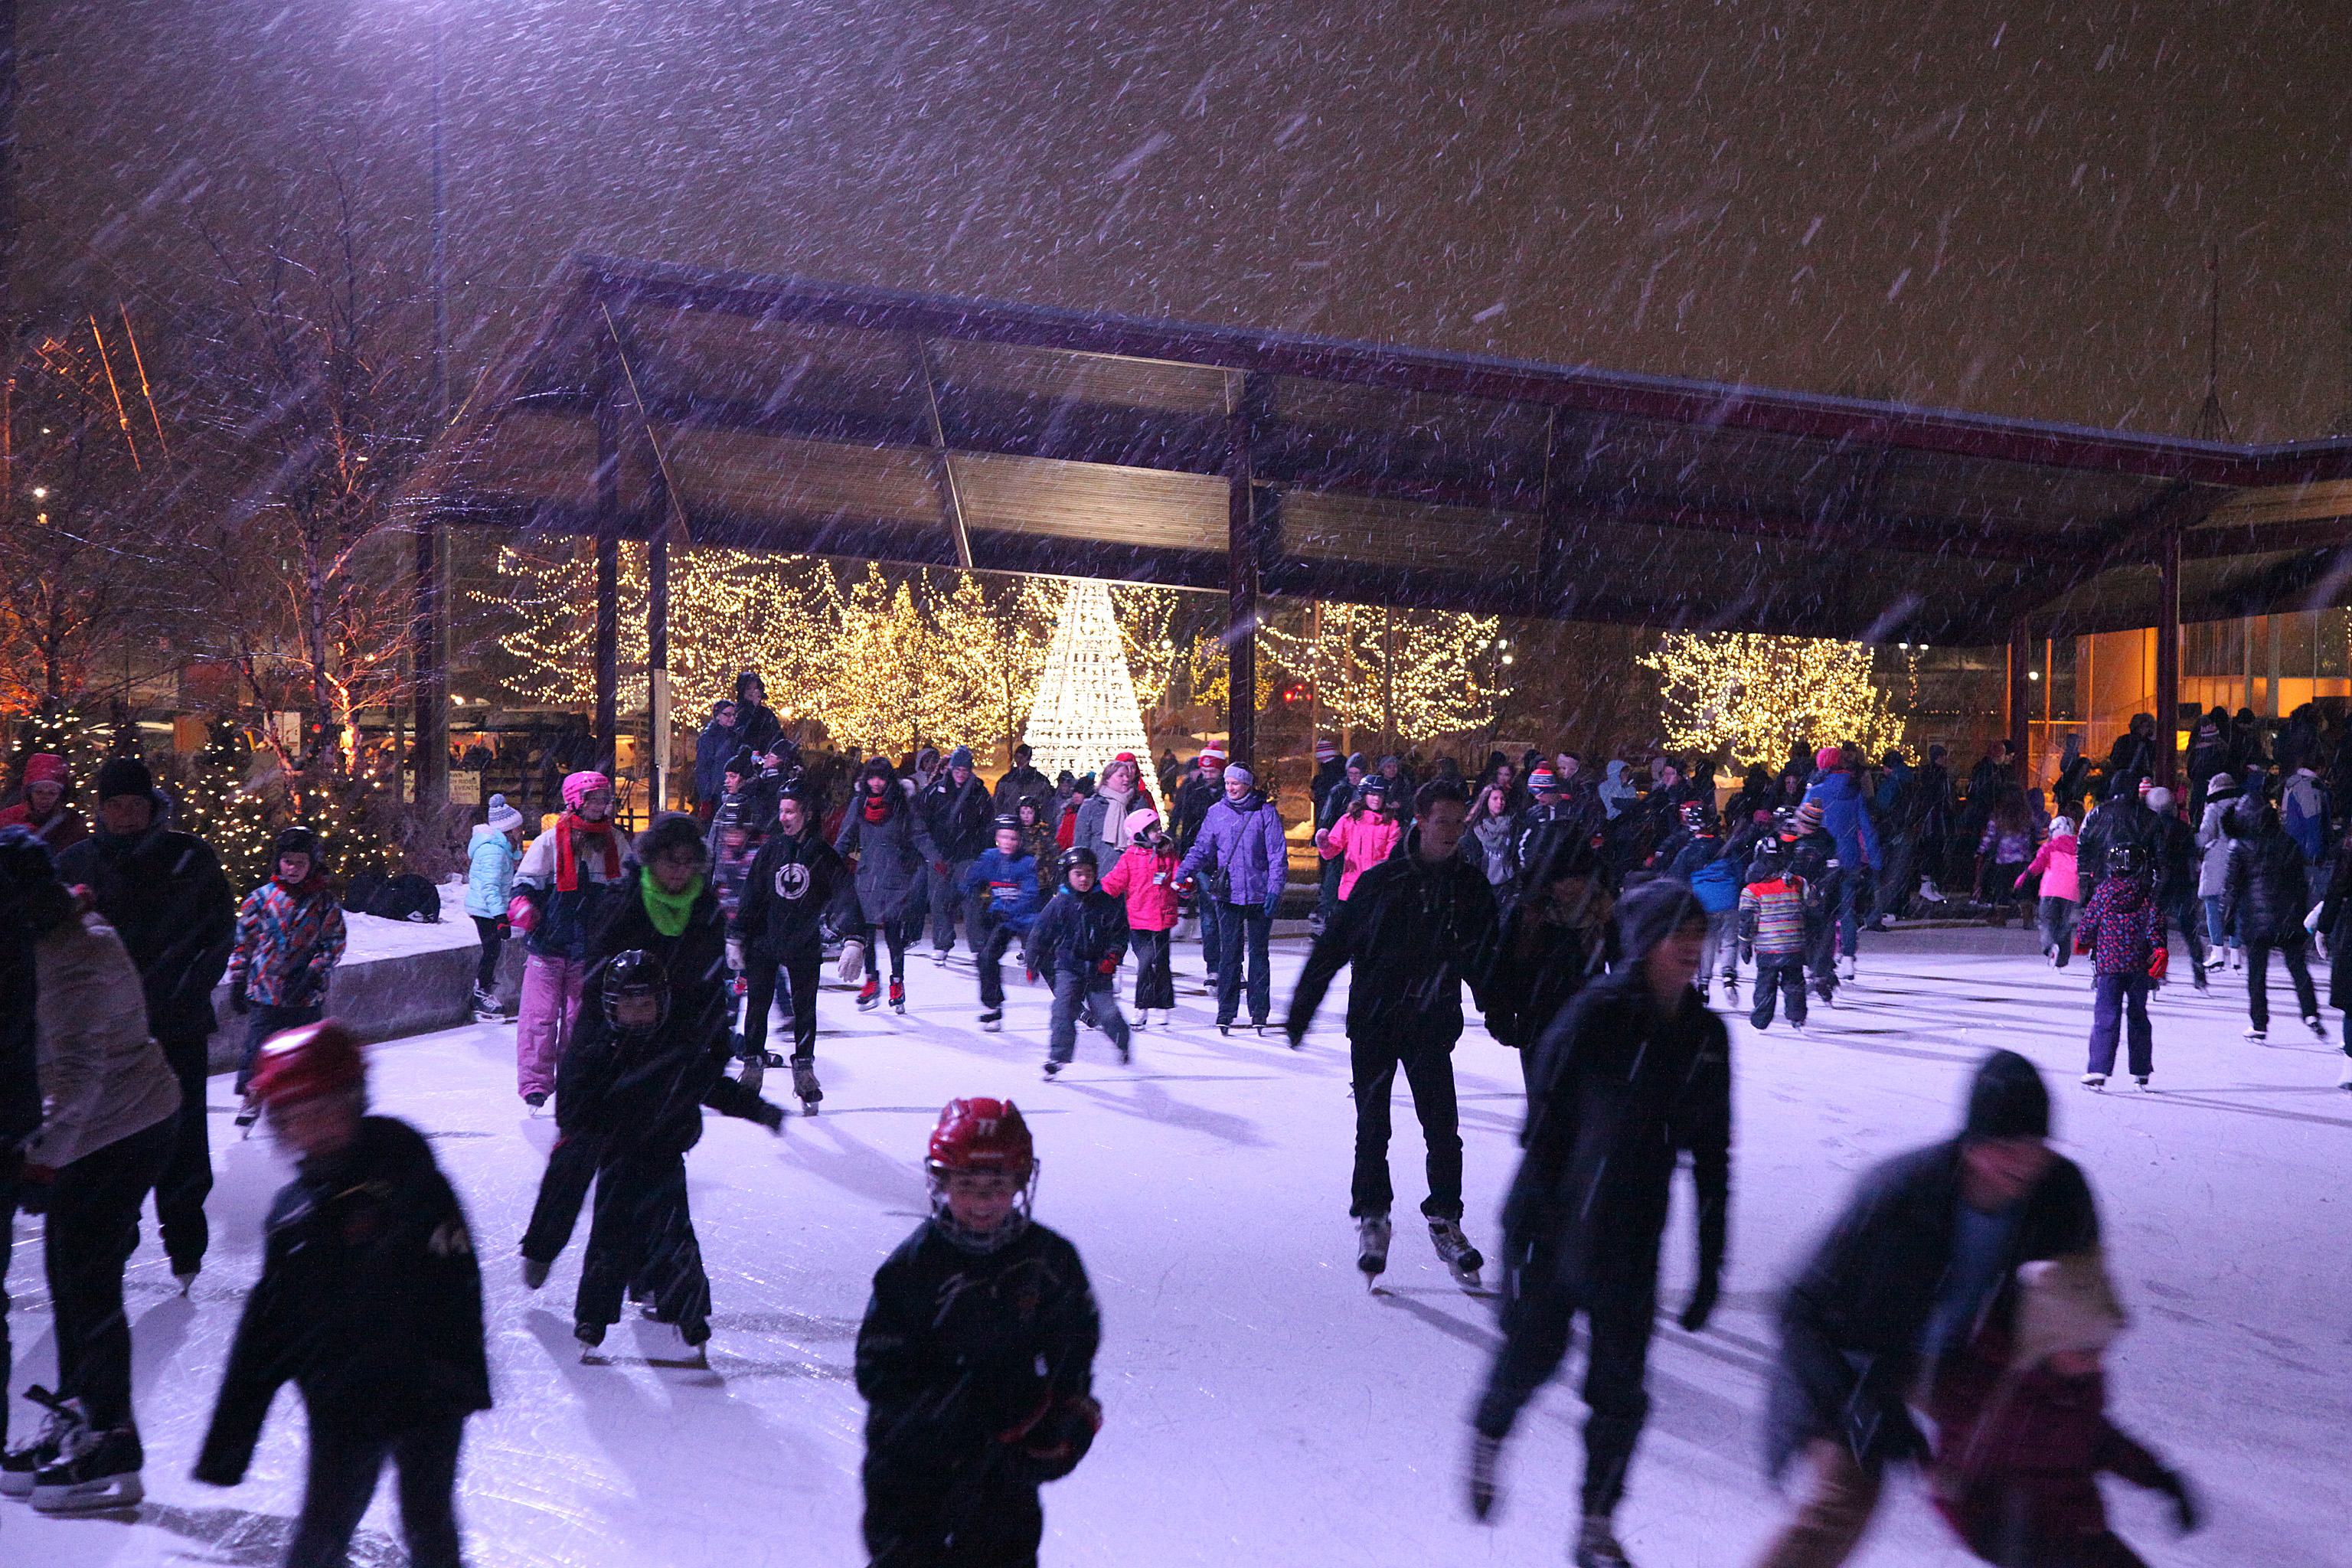 image of People Skating while it is snowing